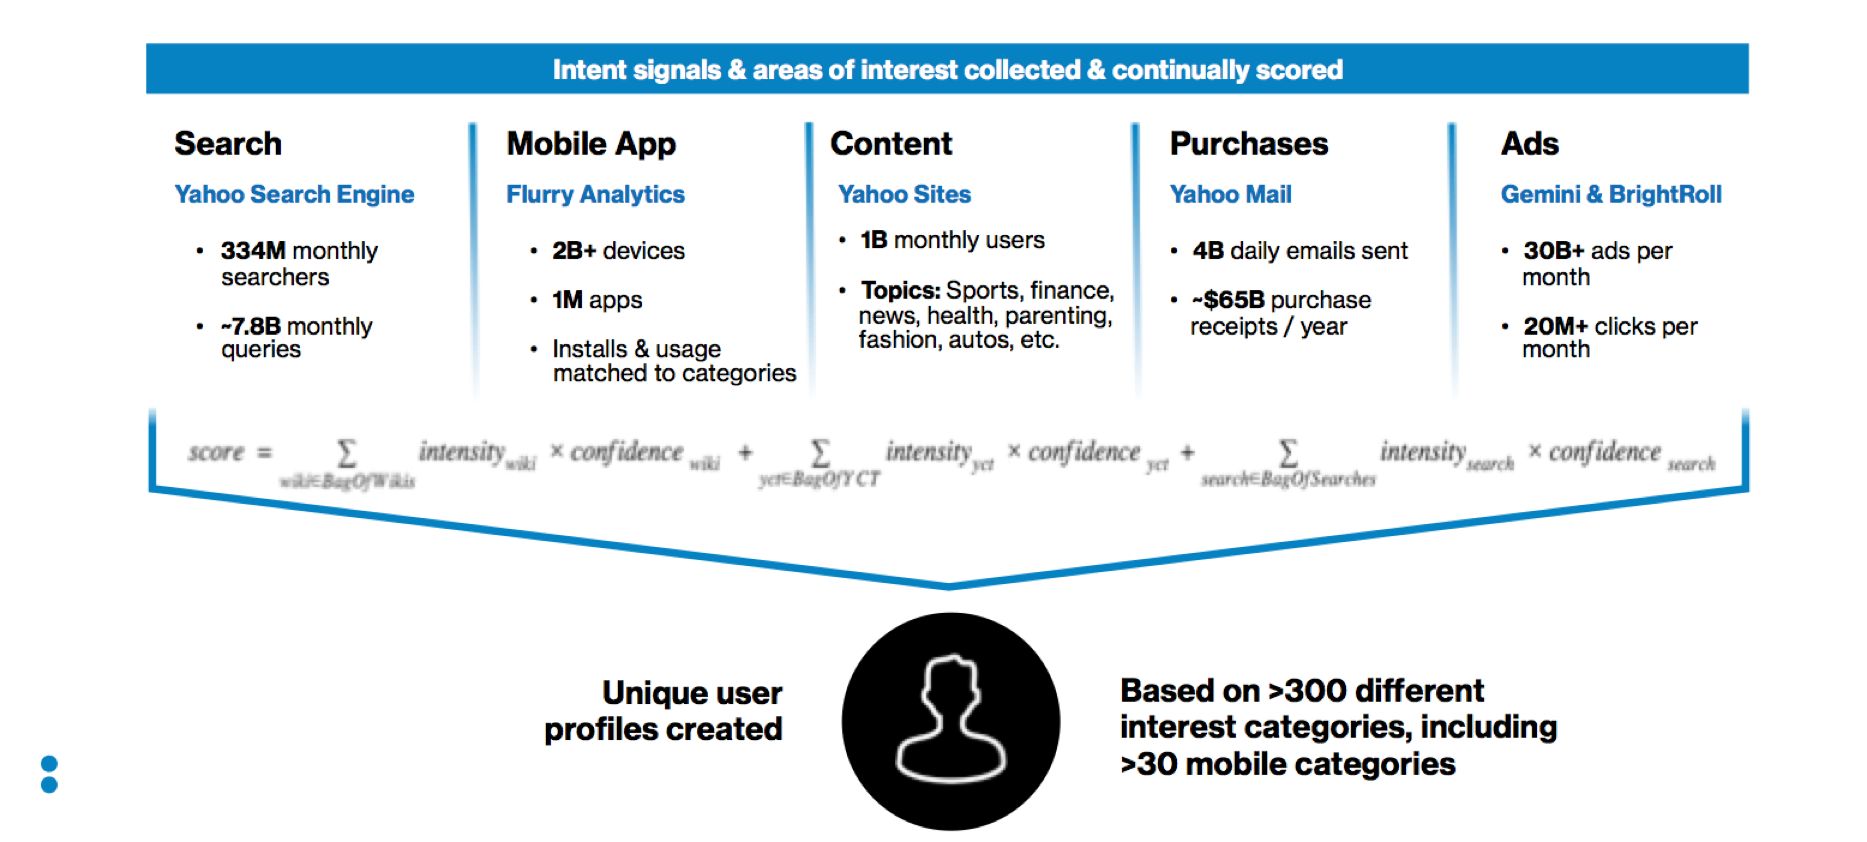 interest-categories-infographic